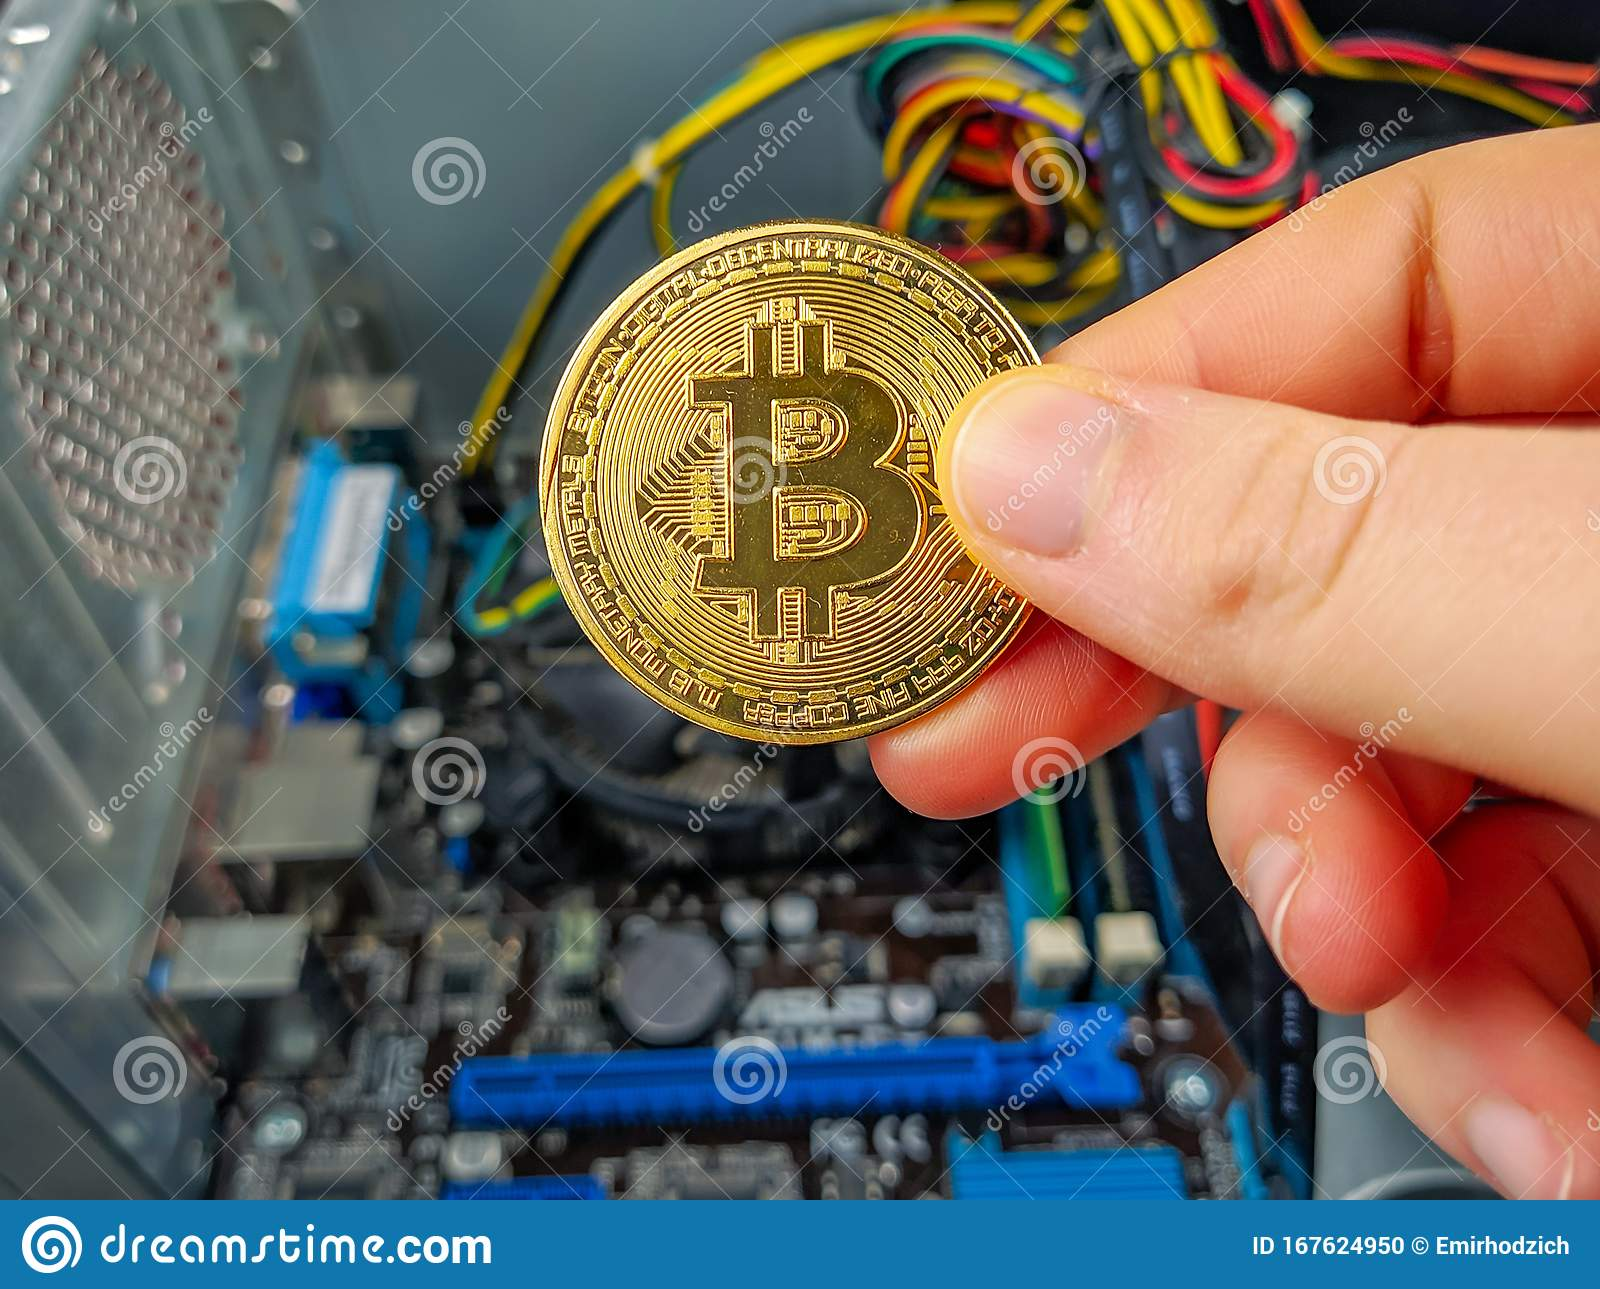 cryptocurrency is based on which technology